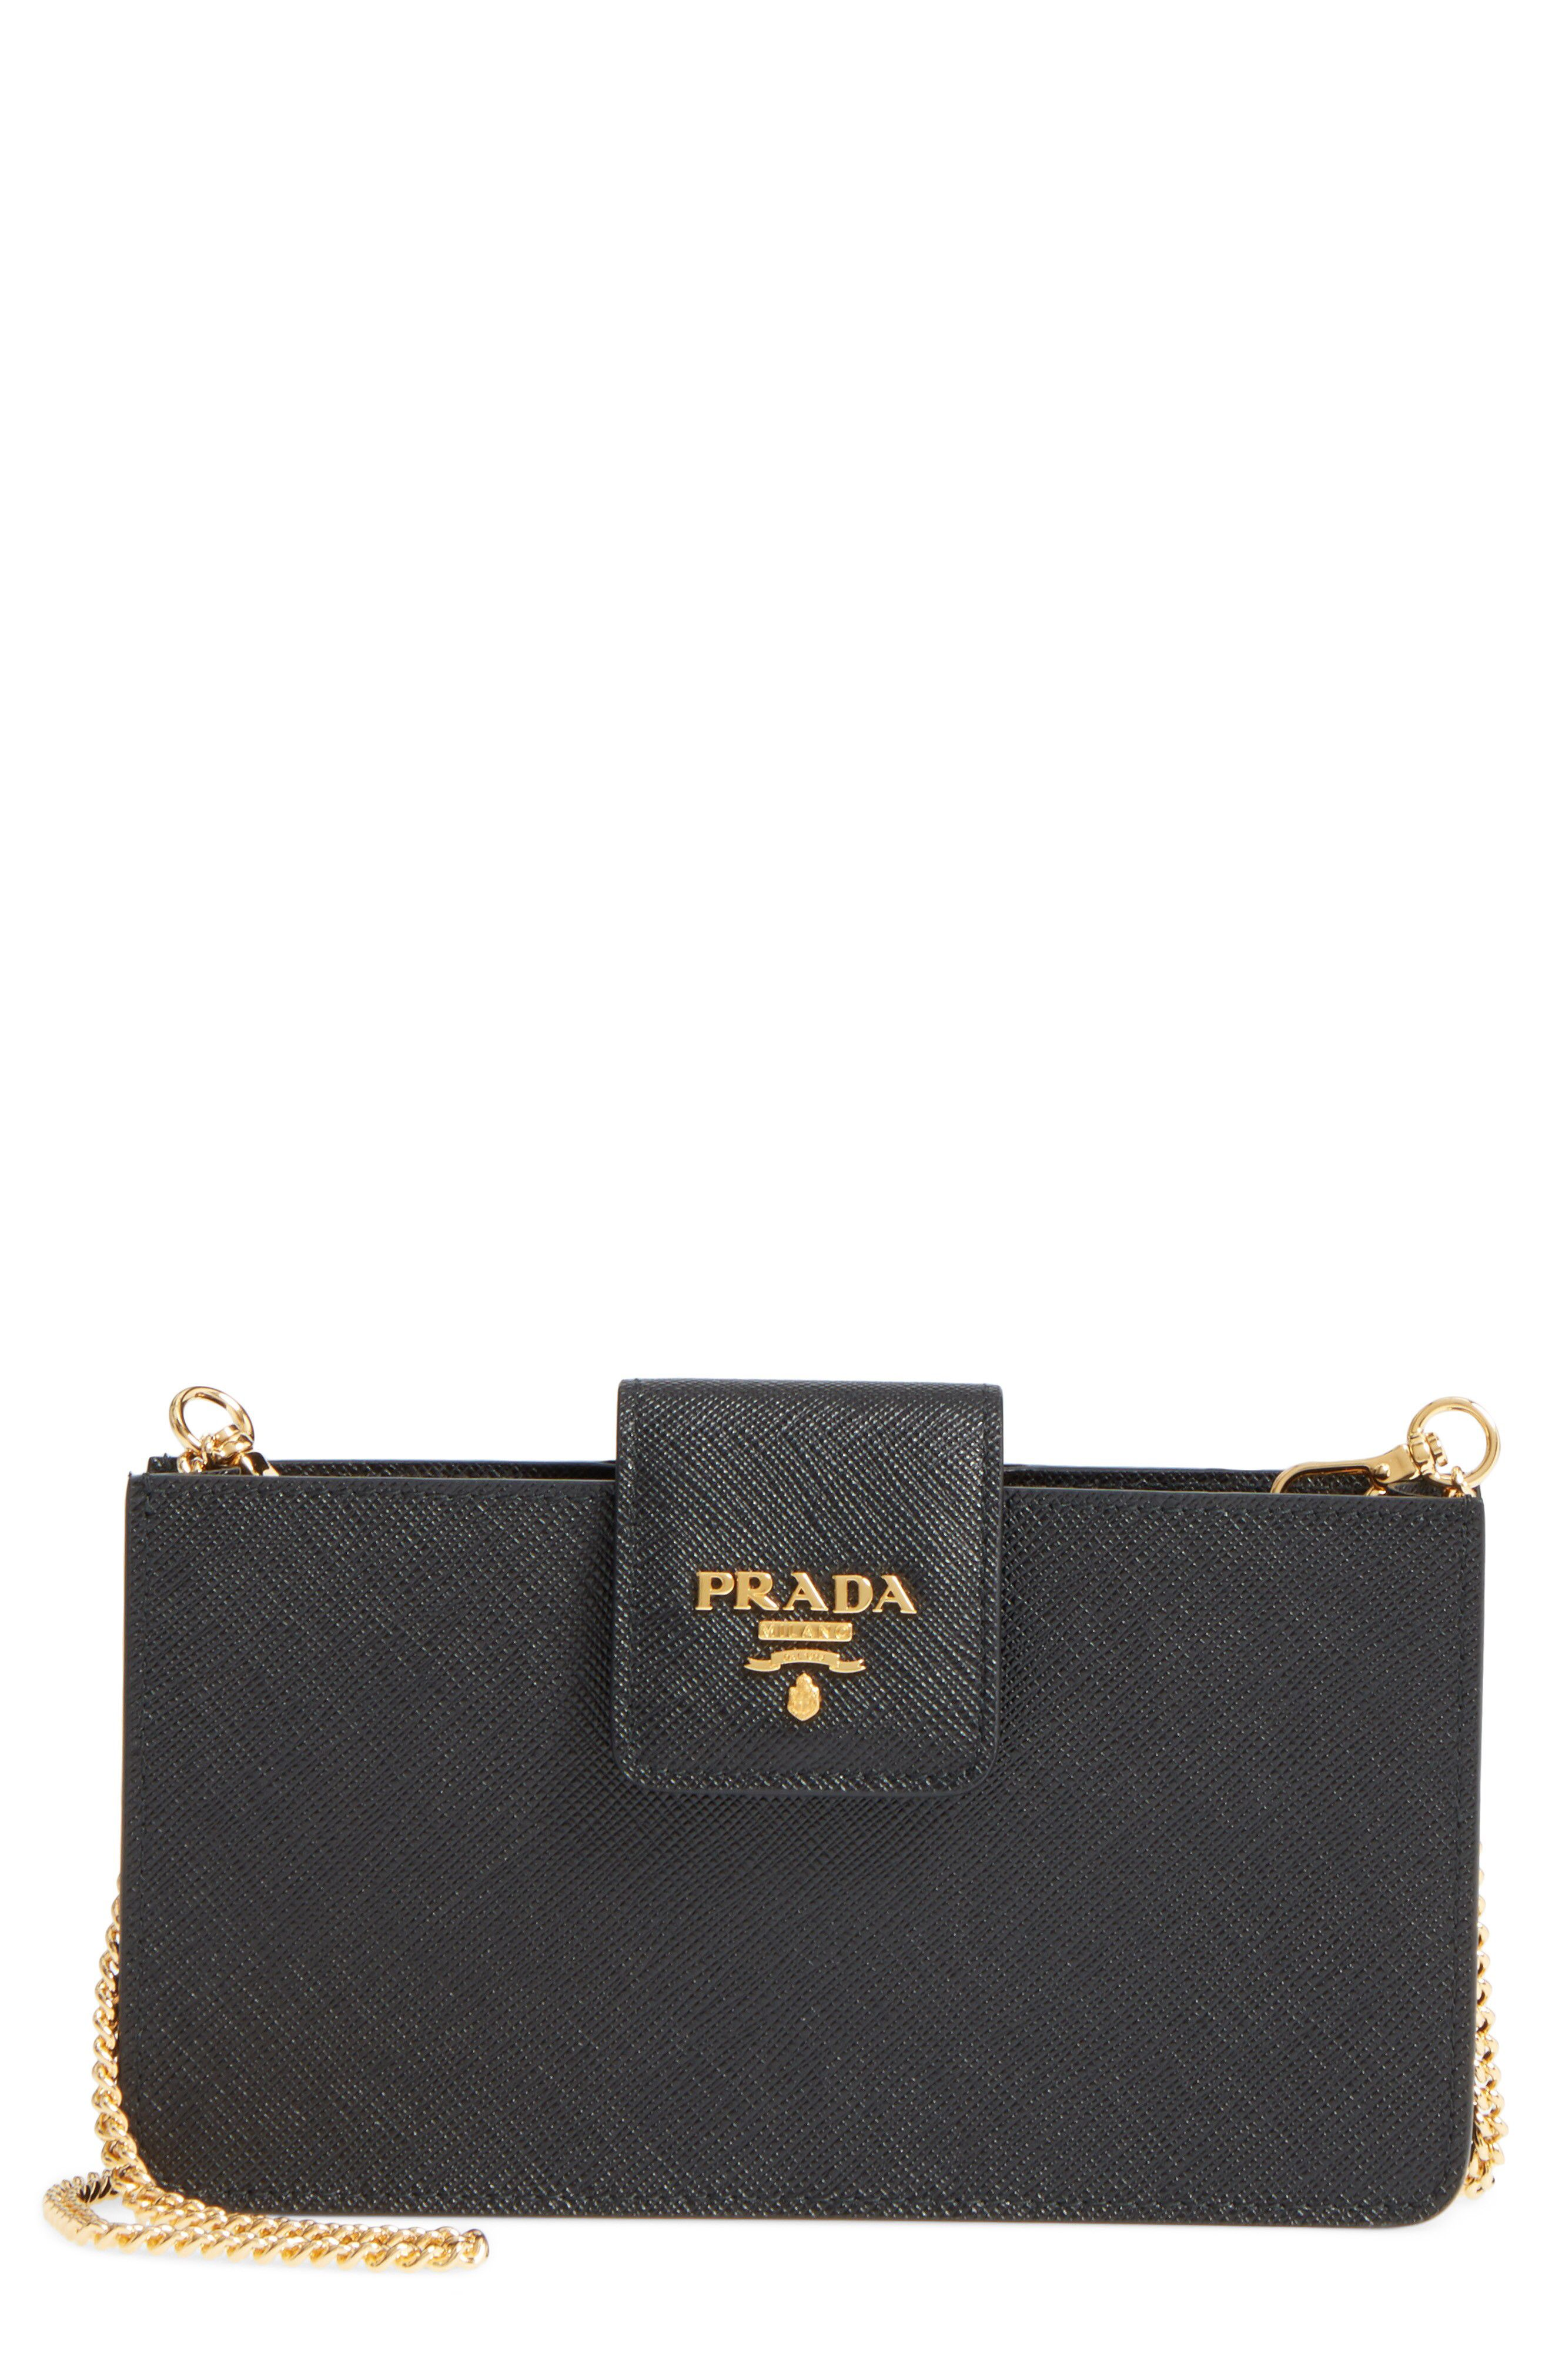 c3529fcf6d45 Prada Saffiano Leather Phone Wallet on a Chain available at #Nordstrom